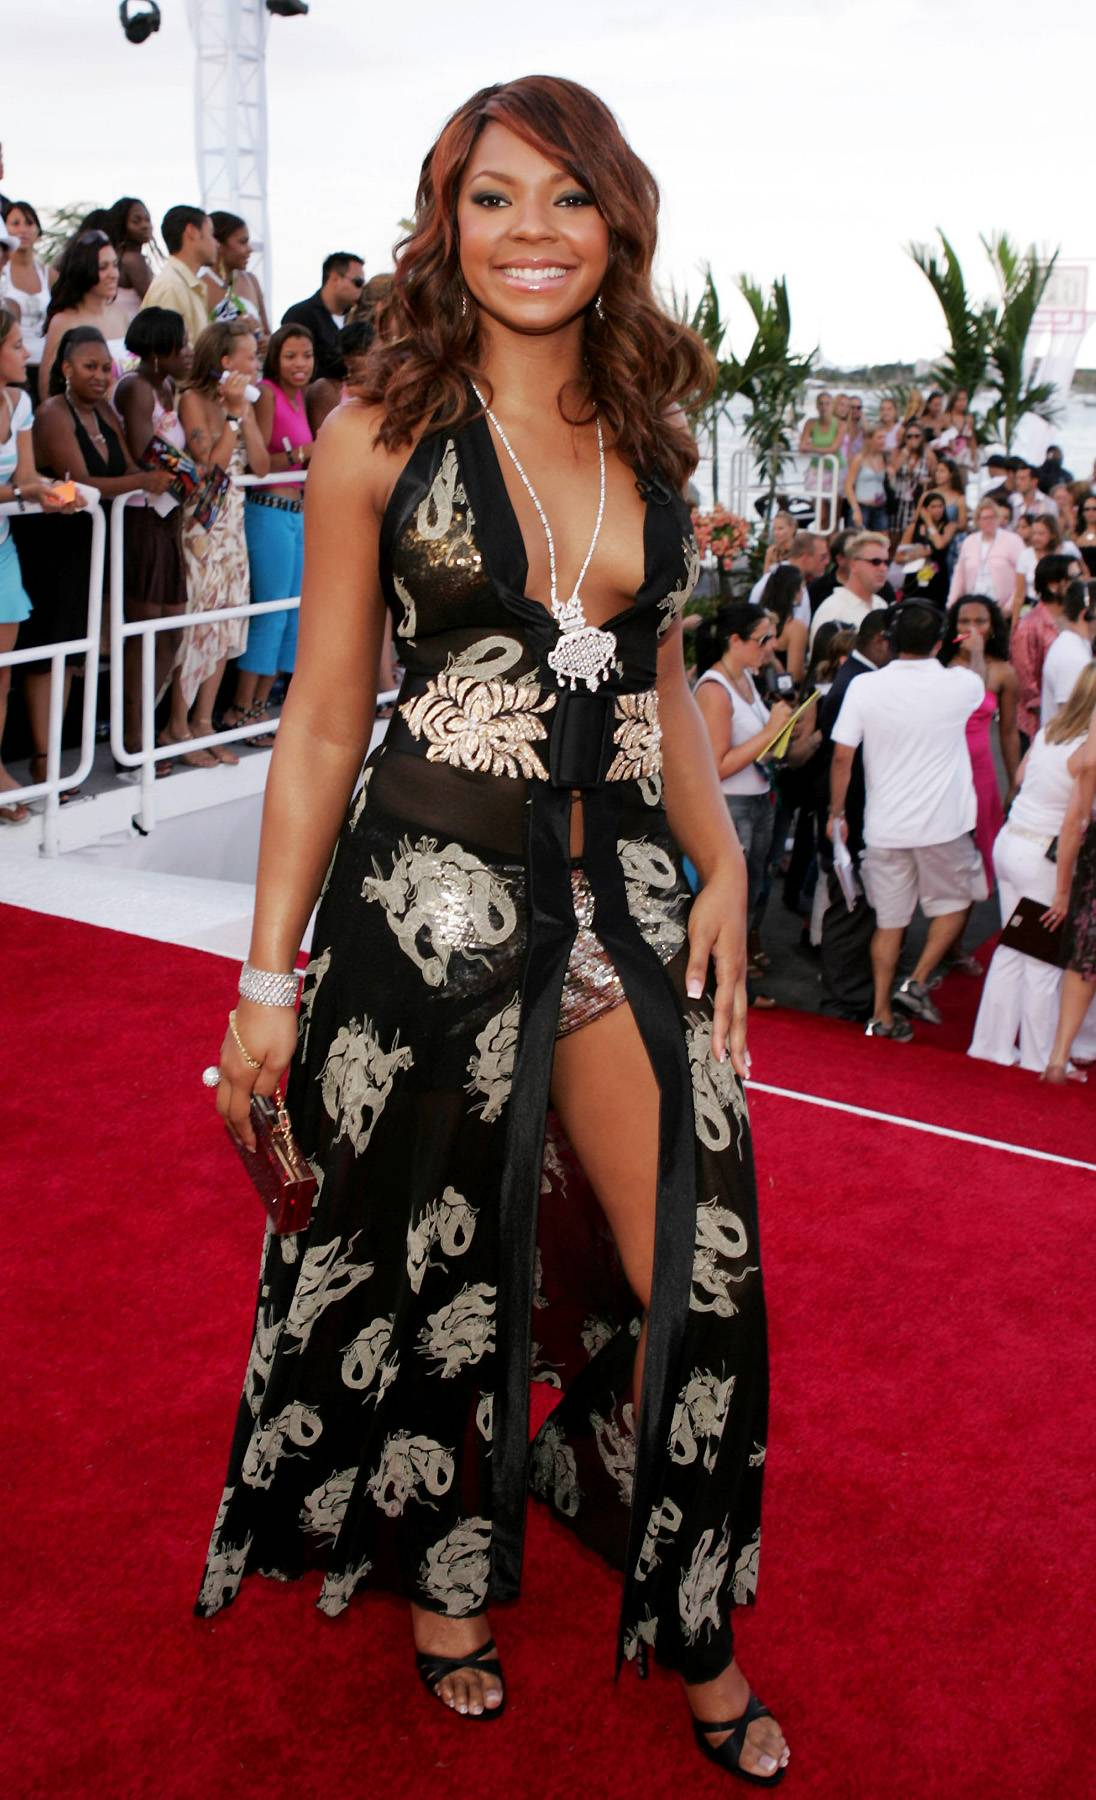 Showing Some Skin - Ashanti shows a lot of skin at the 2004 MTV Video Music Awards.(Photo: Frank Micelotta/Getty Images)